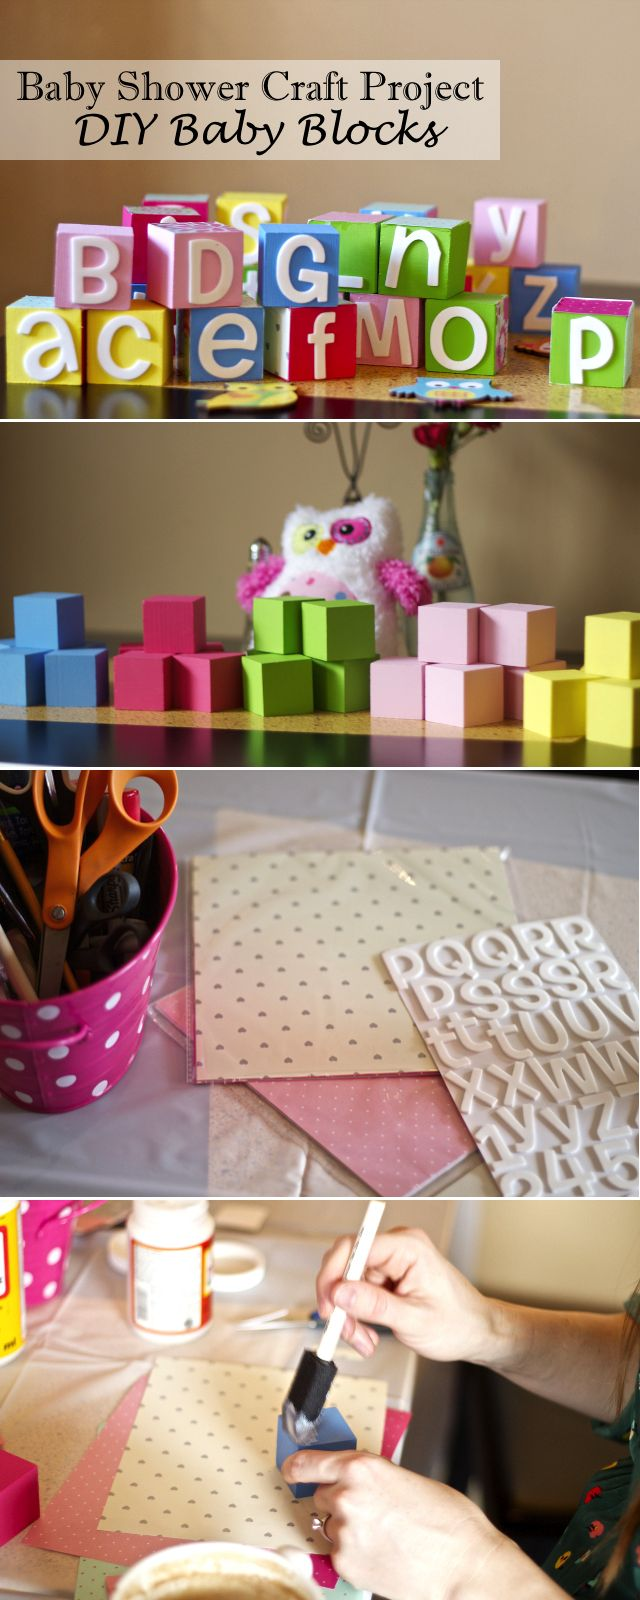 Chasing Davies: Baby Shower Craft Idea: DIY Baby Blocks